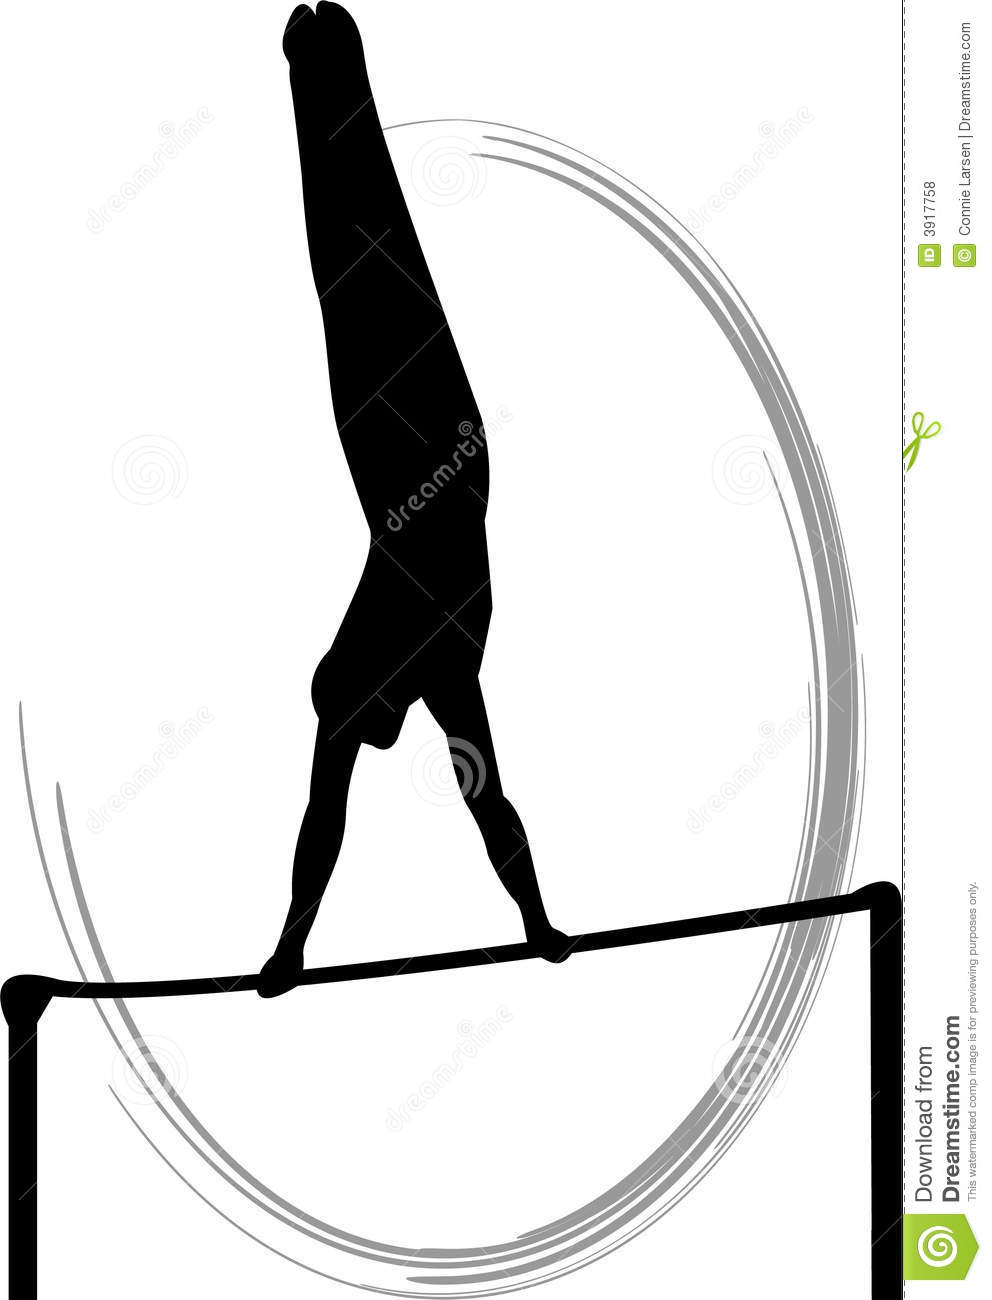 Hines (OR) United States  city photo : Silhouette illustration of a male gymnast executing giant swings on ...